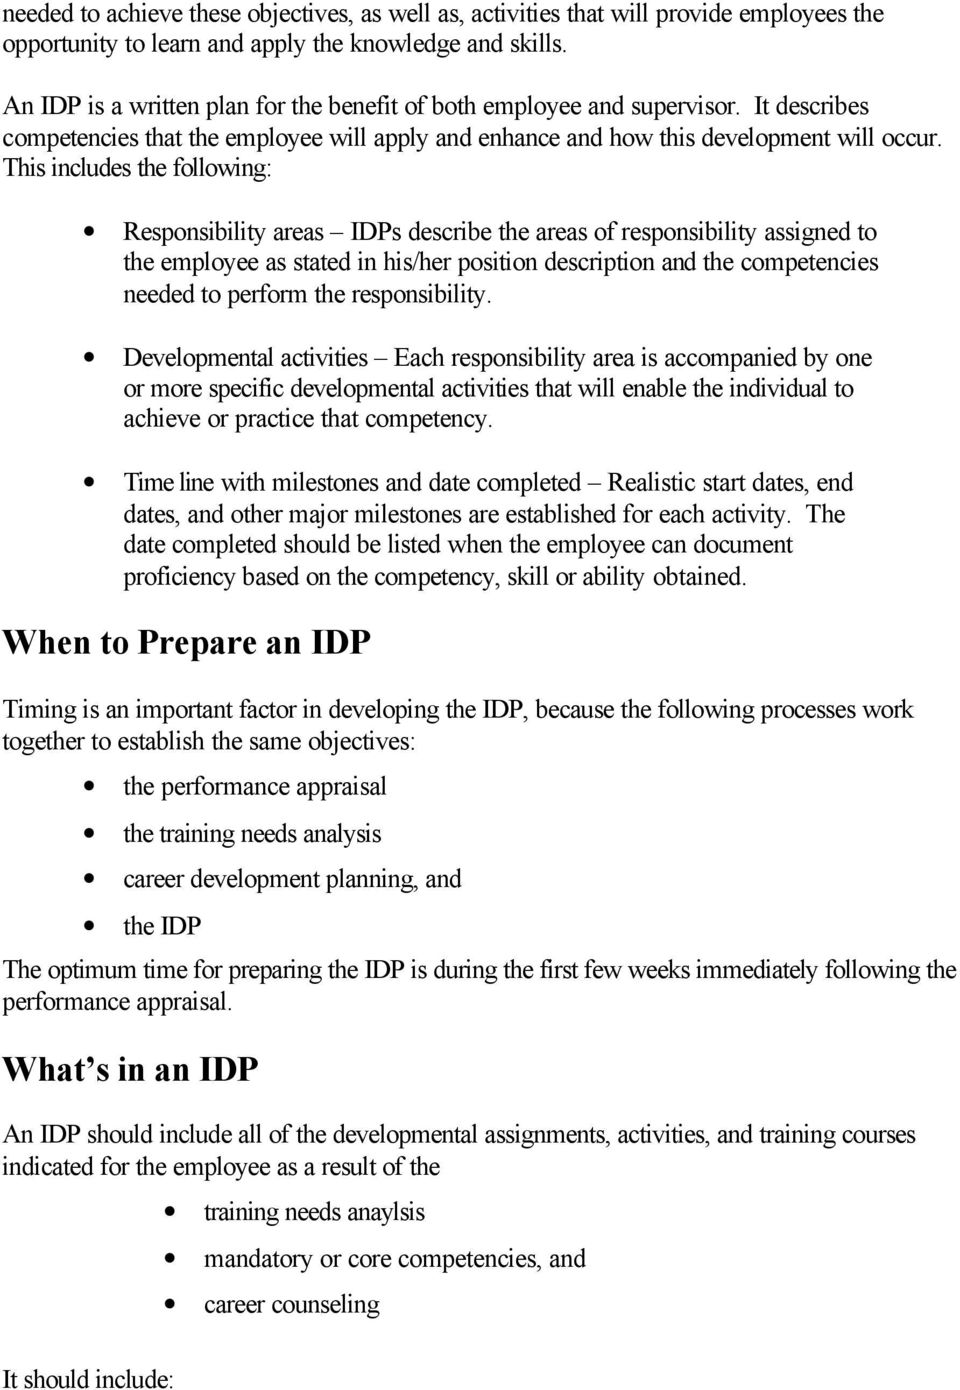 This includes the following: Responsibility areas IDPs describe the areas of responsibility assigned to the employee as stated in his/her position description and the competencies needed to perform